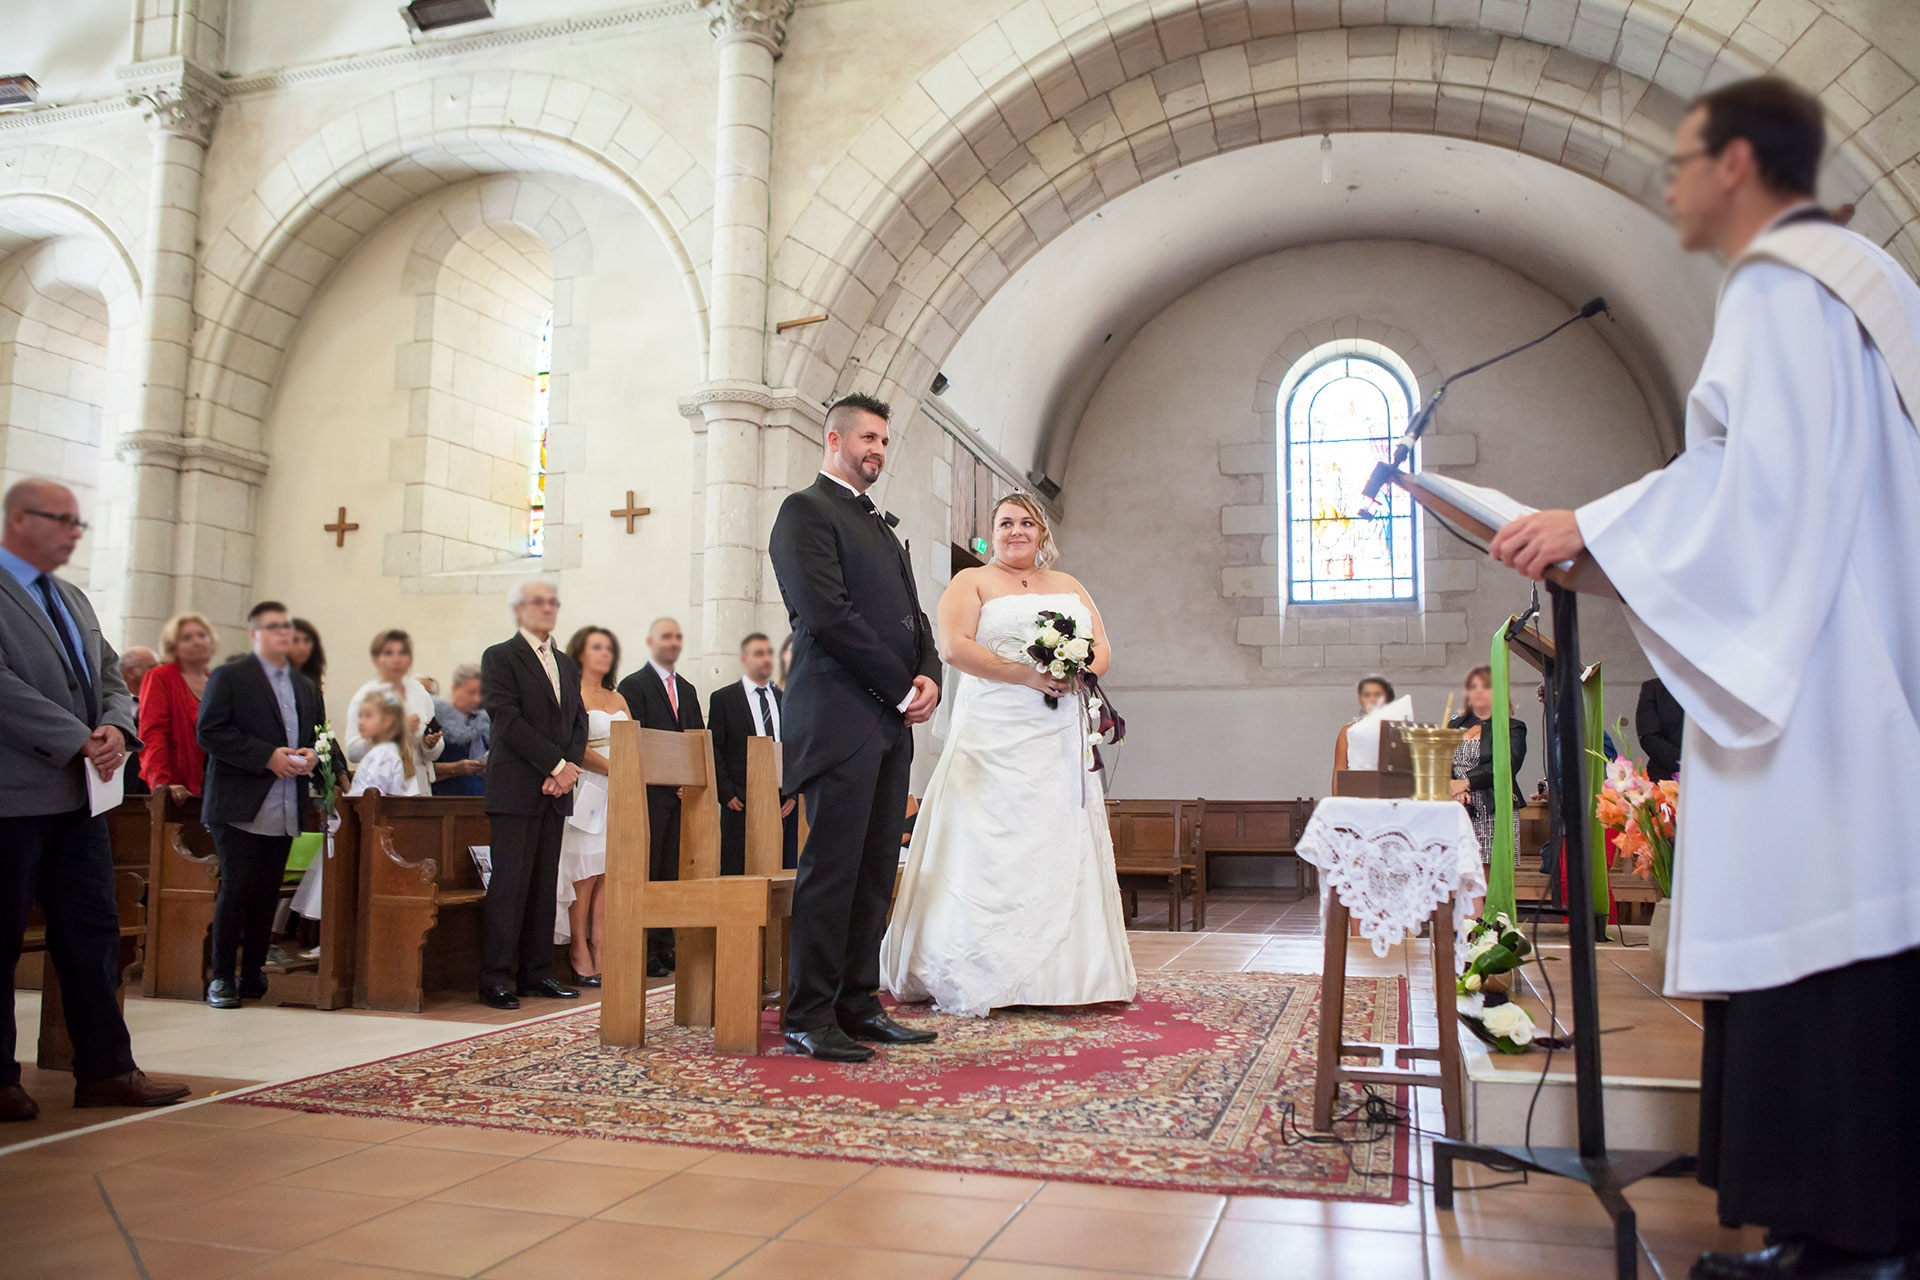 particuliers-evenements-mariages-oui-elodie&wilson-40